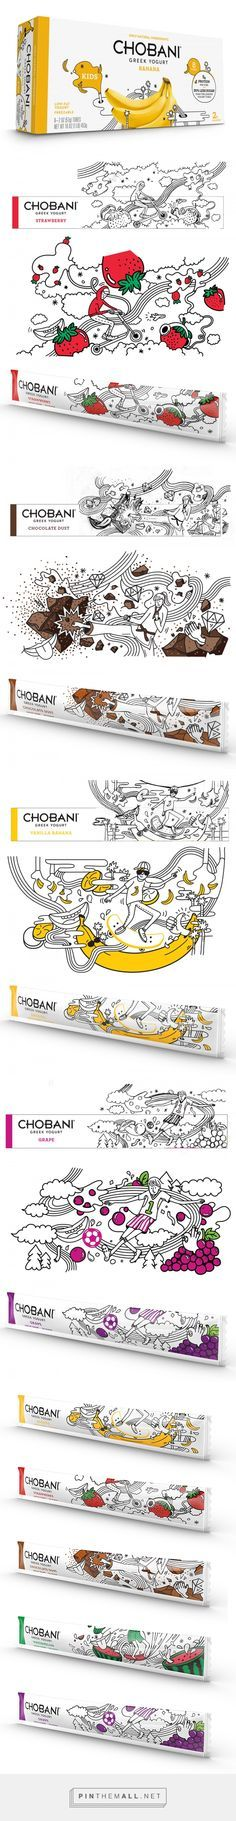 Chobani Yogurt Kids — The Dieline - Branding & Packaging. - a grouped images picture - Pin Them All Yogurt Packaging, Kids Packaging, Fruit Packaging, Food Packaging Design, Brand Packaging, Branding Design, Coffee Packaging, Bottle Packaging, Corporate Design